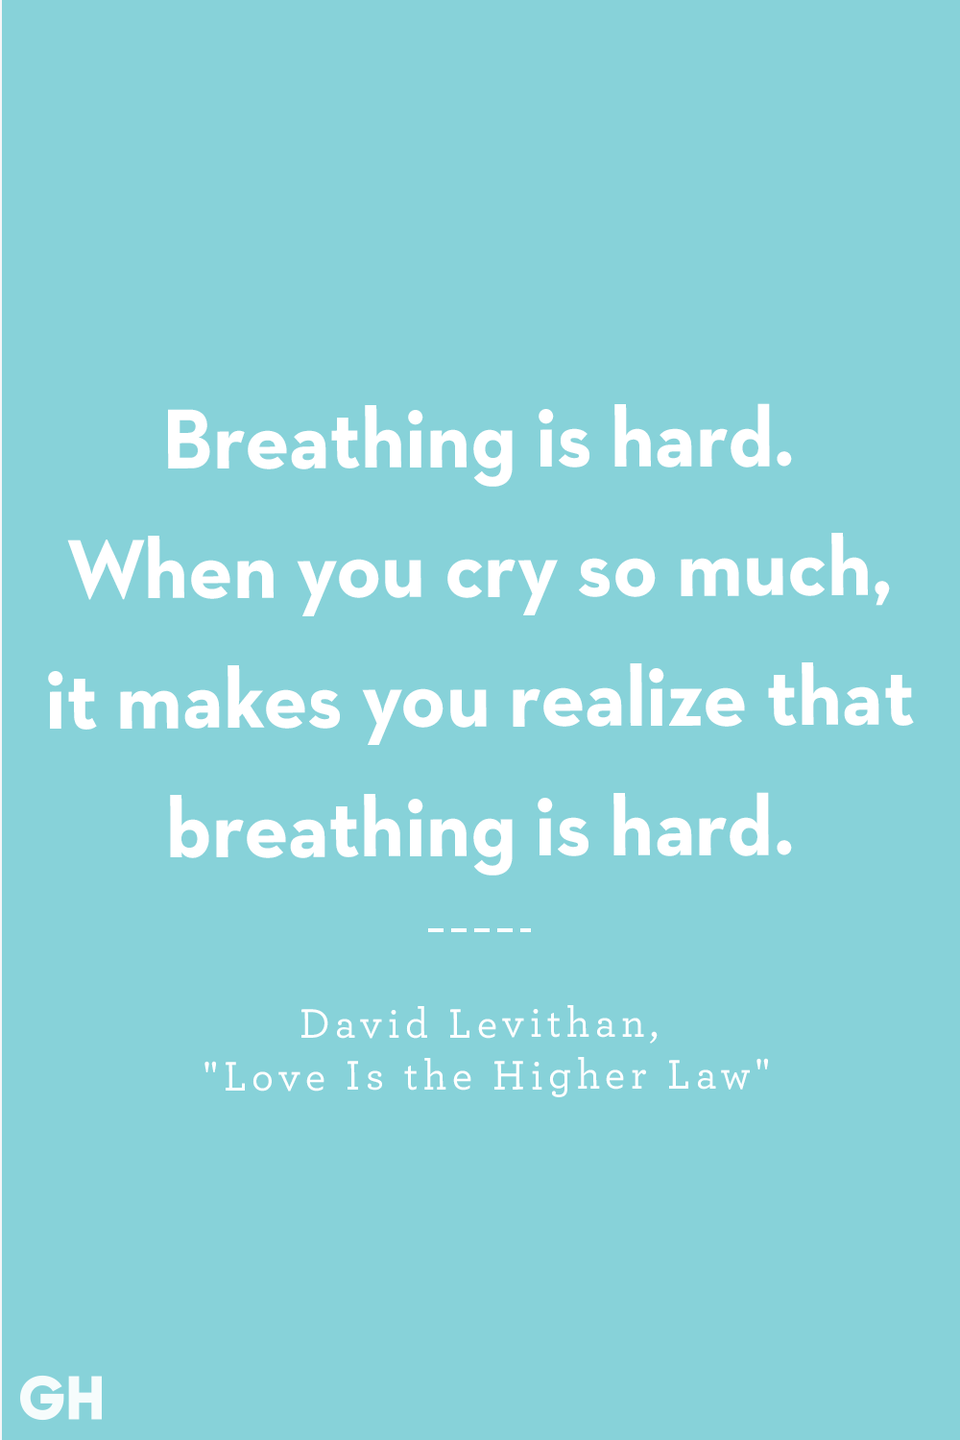 <p>Breathing is hard. When you cry so much, it makes you realize that breathing is hard.</p>